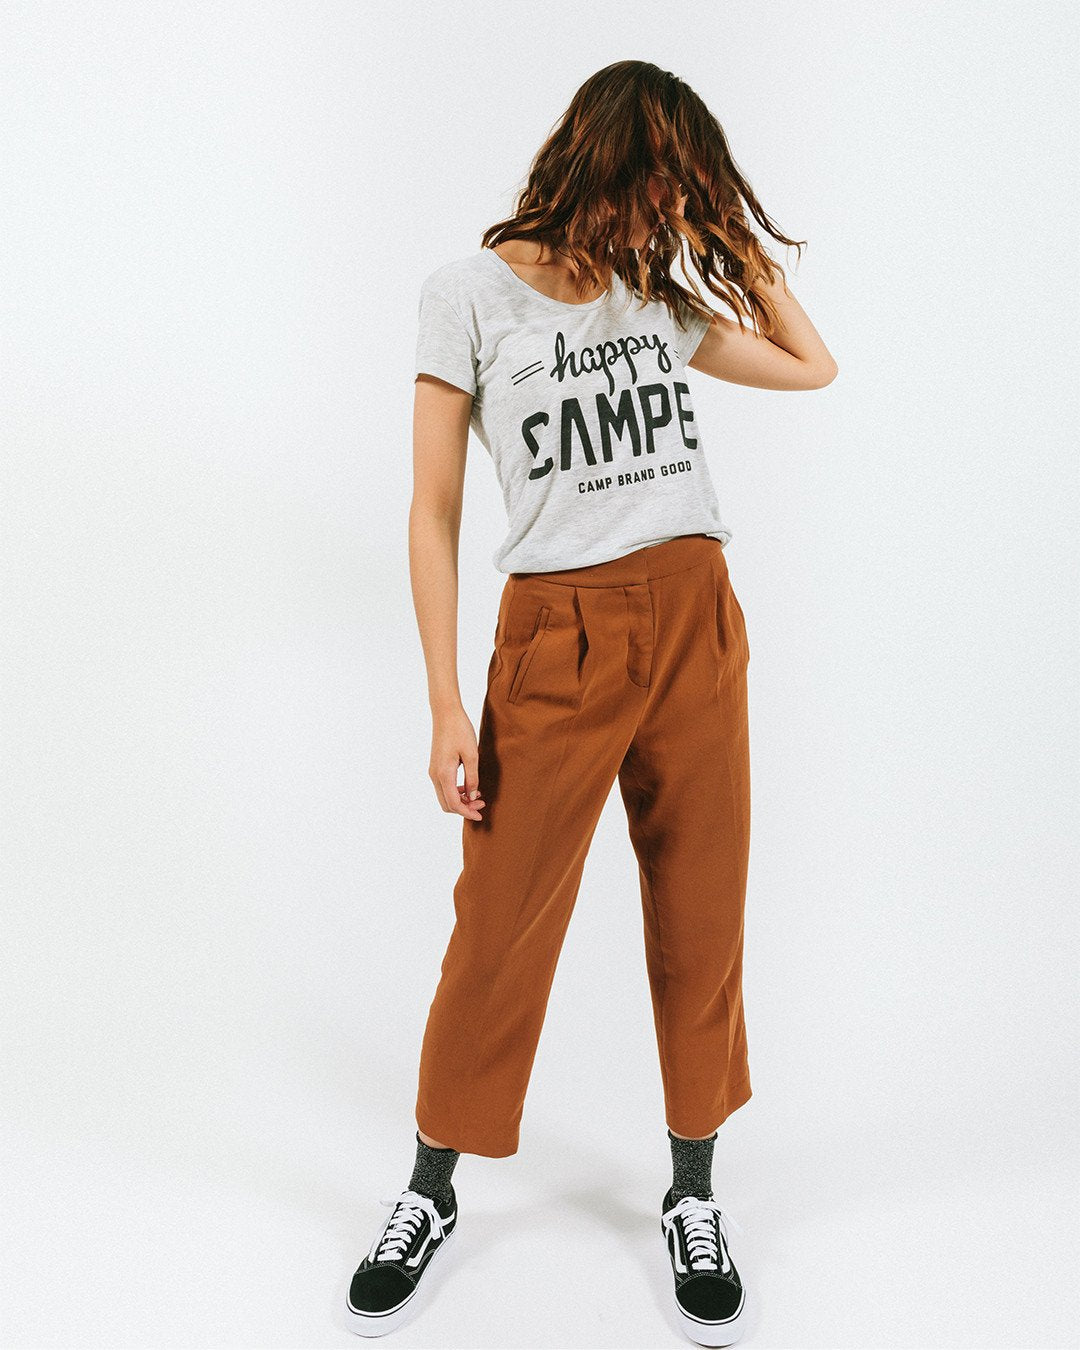 Happy Camper Loose T-Shirt Oatmeal Heather - Our Park Shop